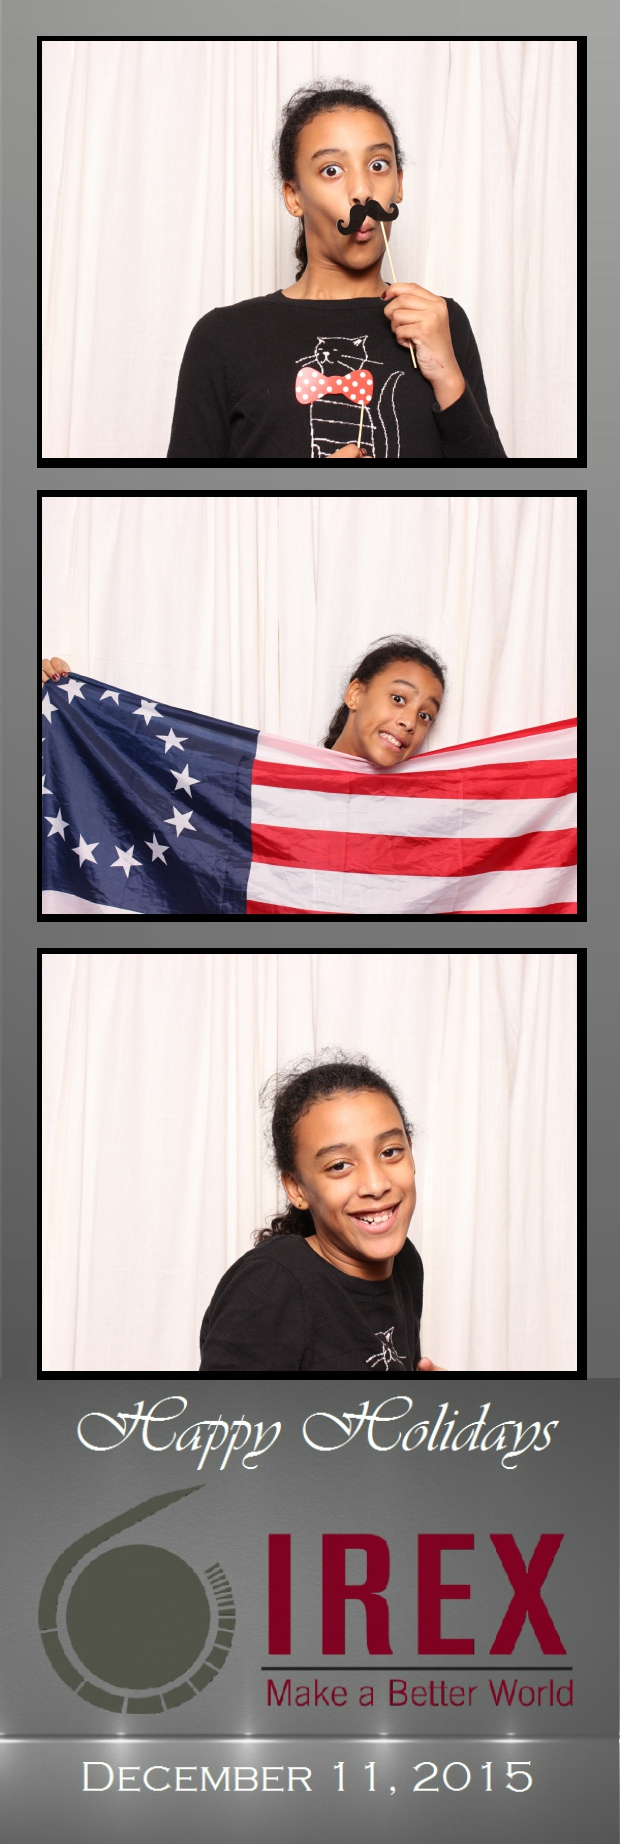 Guest House Events Photo Booth Strips IREX (33).jpg